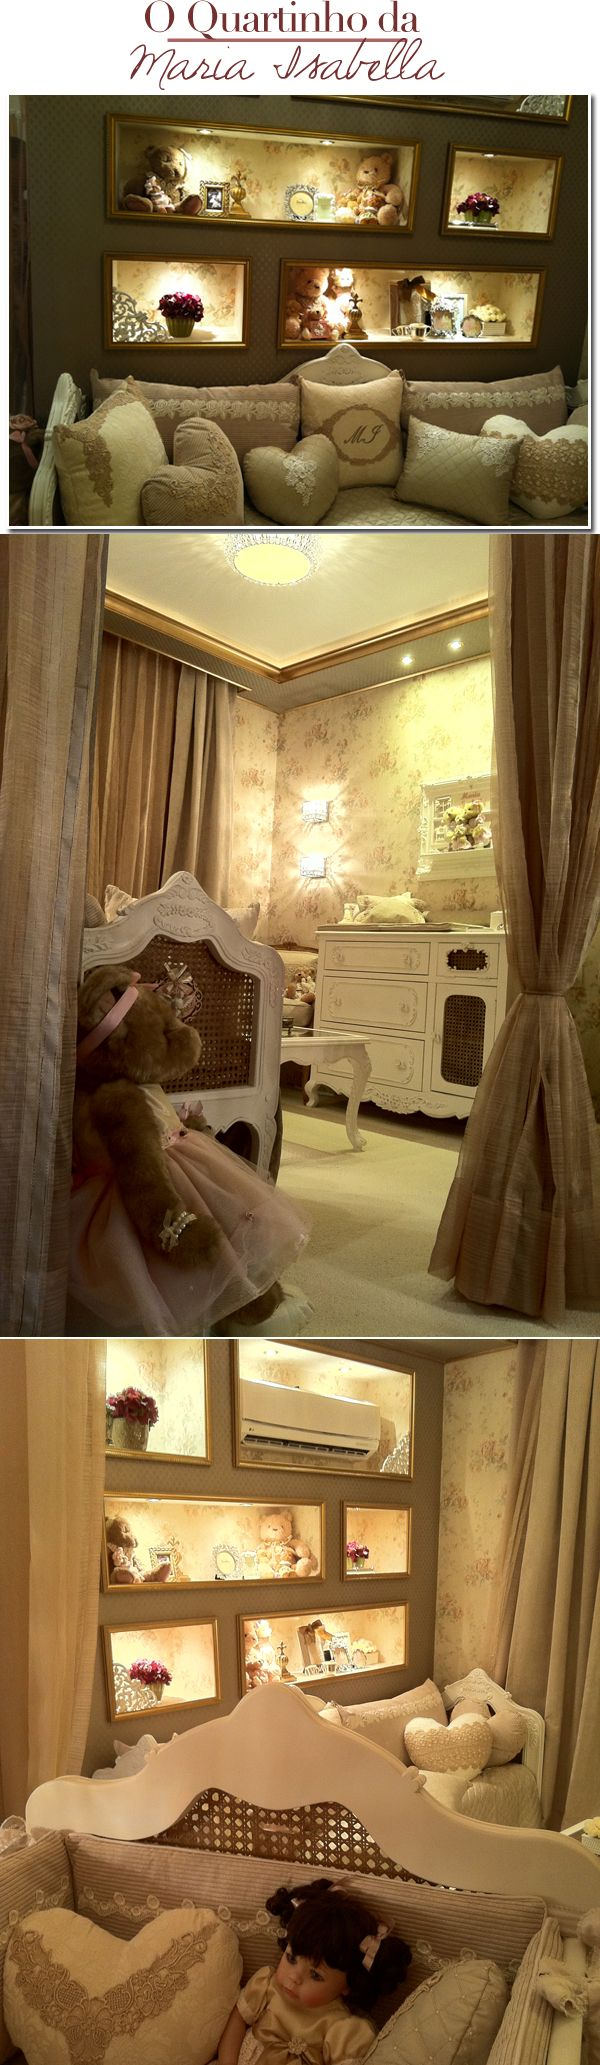 bedroom for baby...pretty